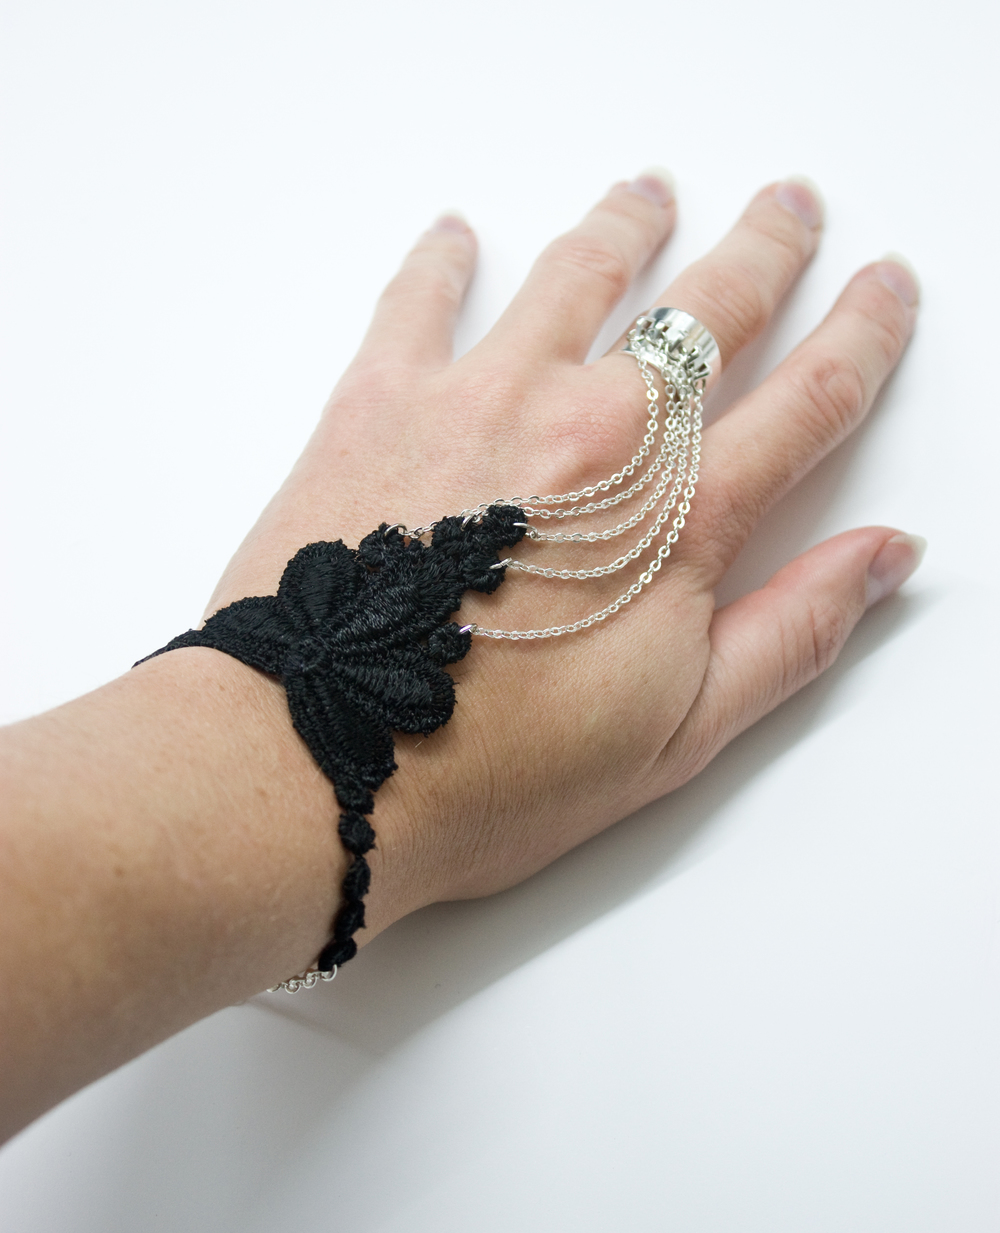 Handlace bracelet (SOLD OUT)